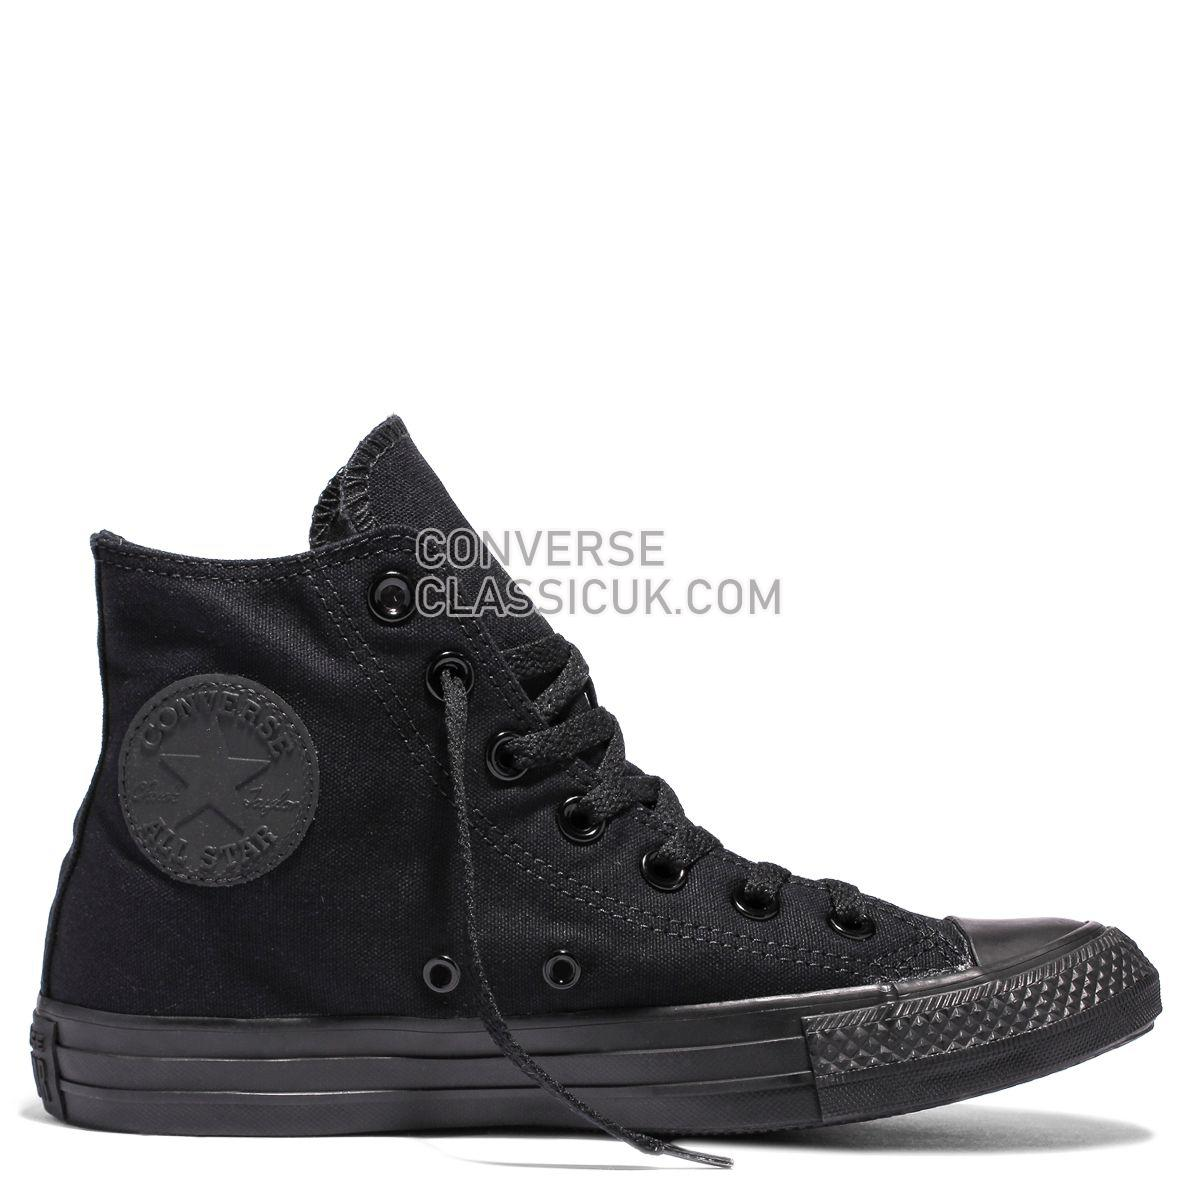 Converse Chuck Taylor All Star Classic Colour High Top Black Mens Womens Unisex 13310 Black Shoes